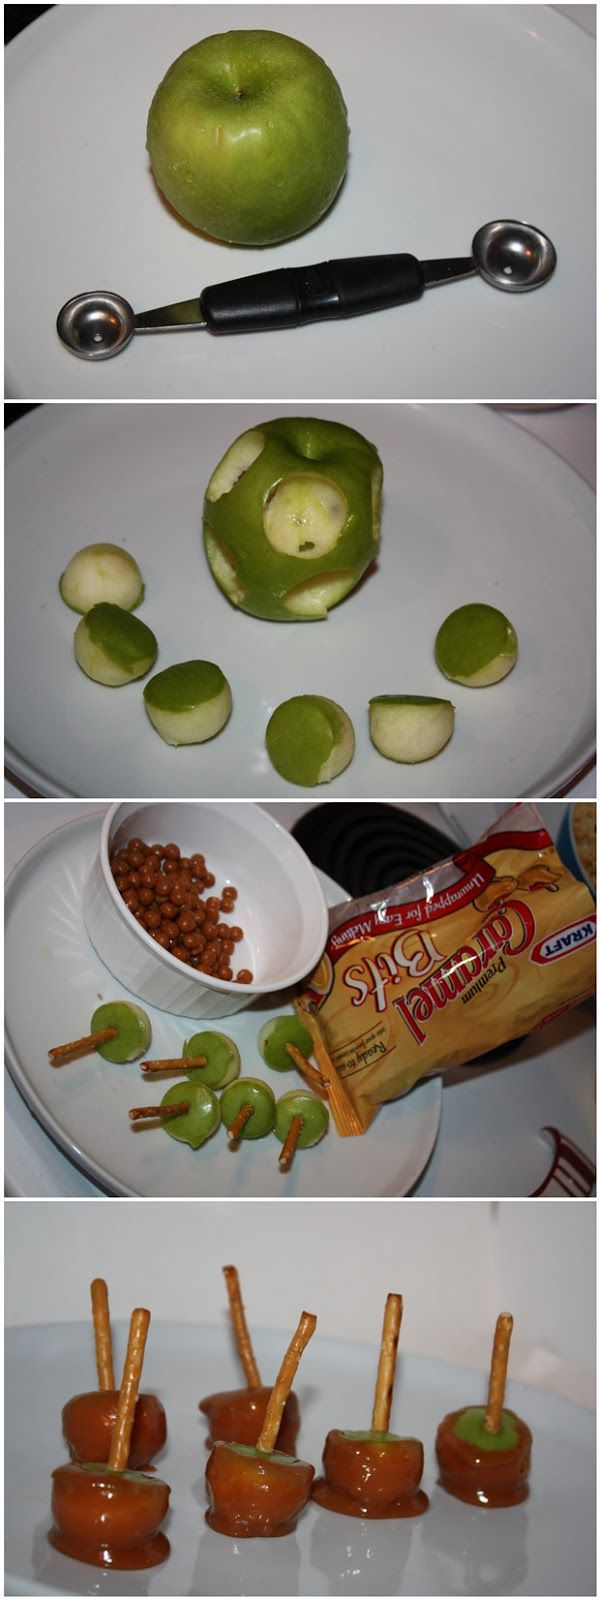 Red Sky Food: Mini Caramel Apples